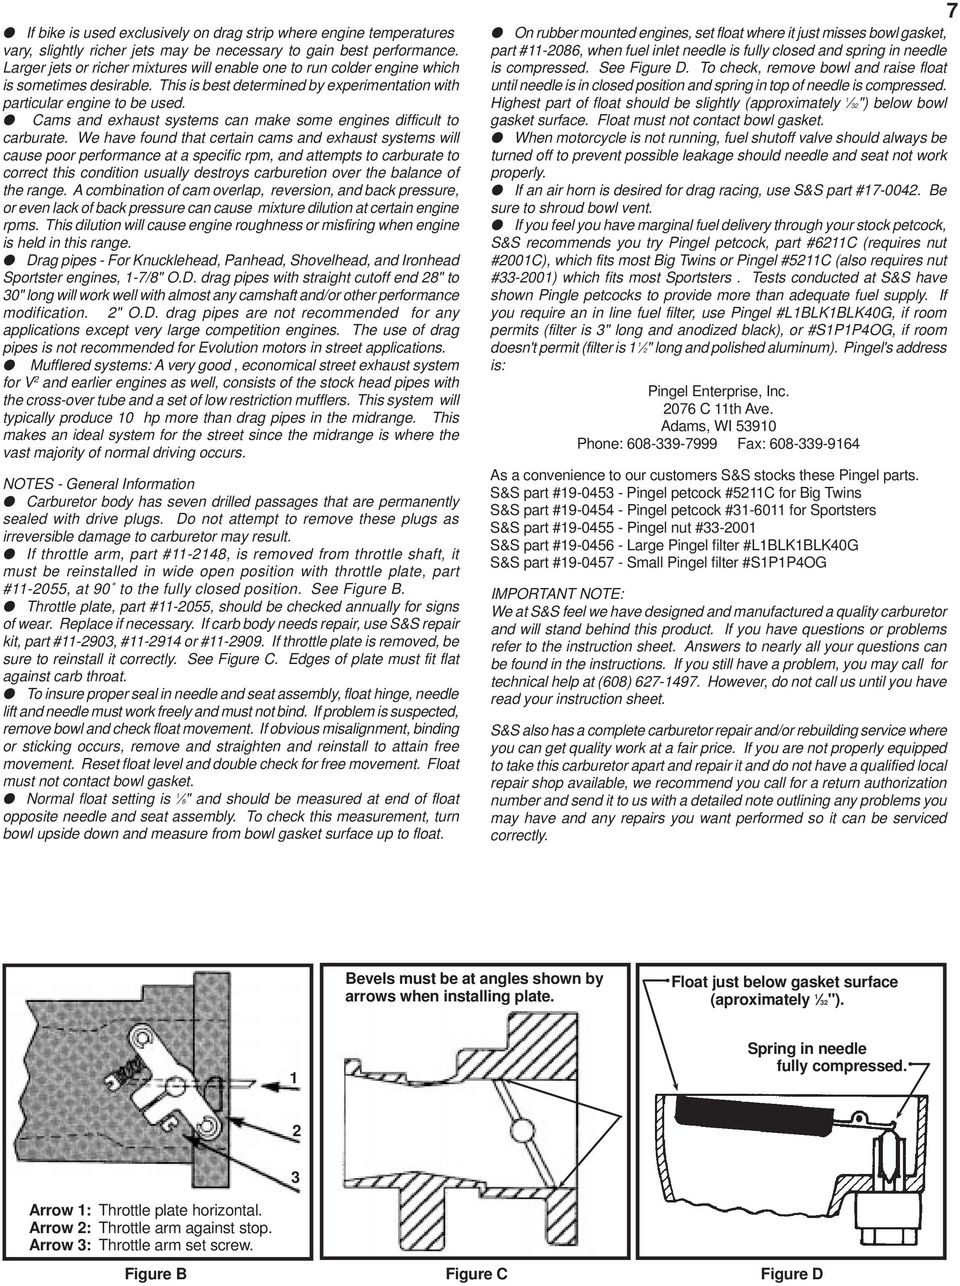 S&S Cycle, Inc  Installation and Jetting Instructions for S&S Super